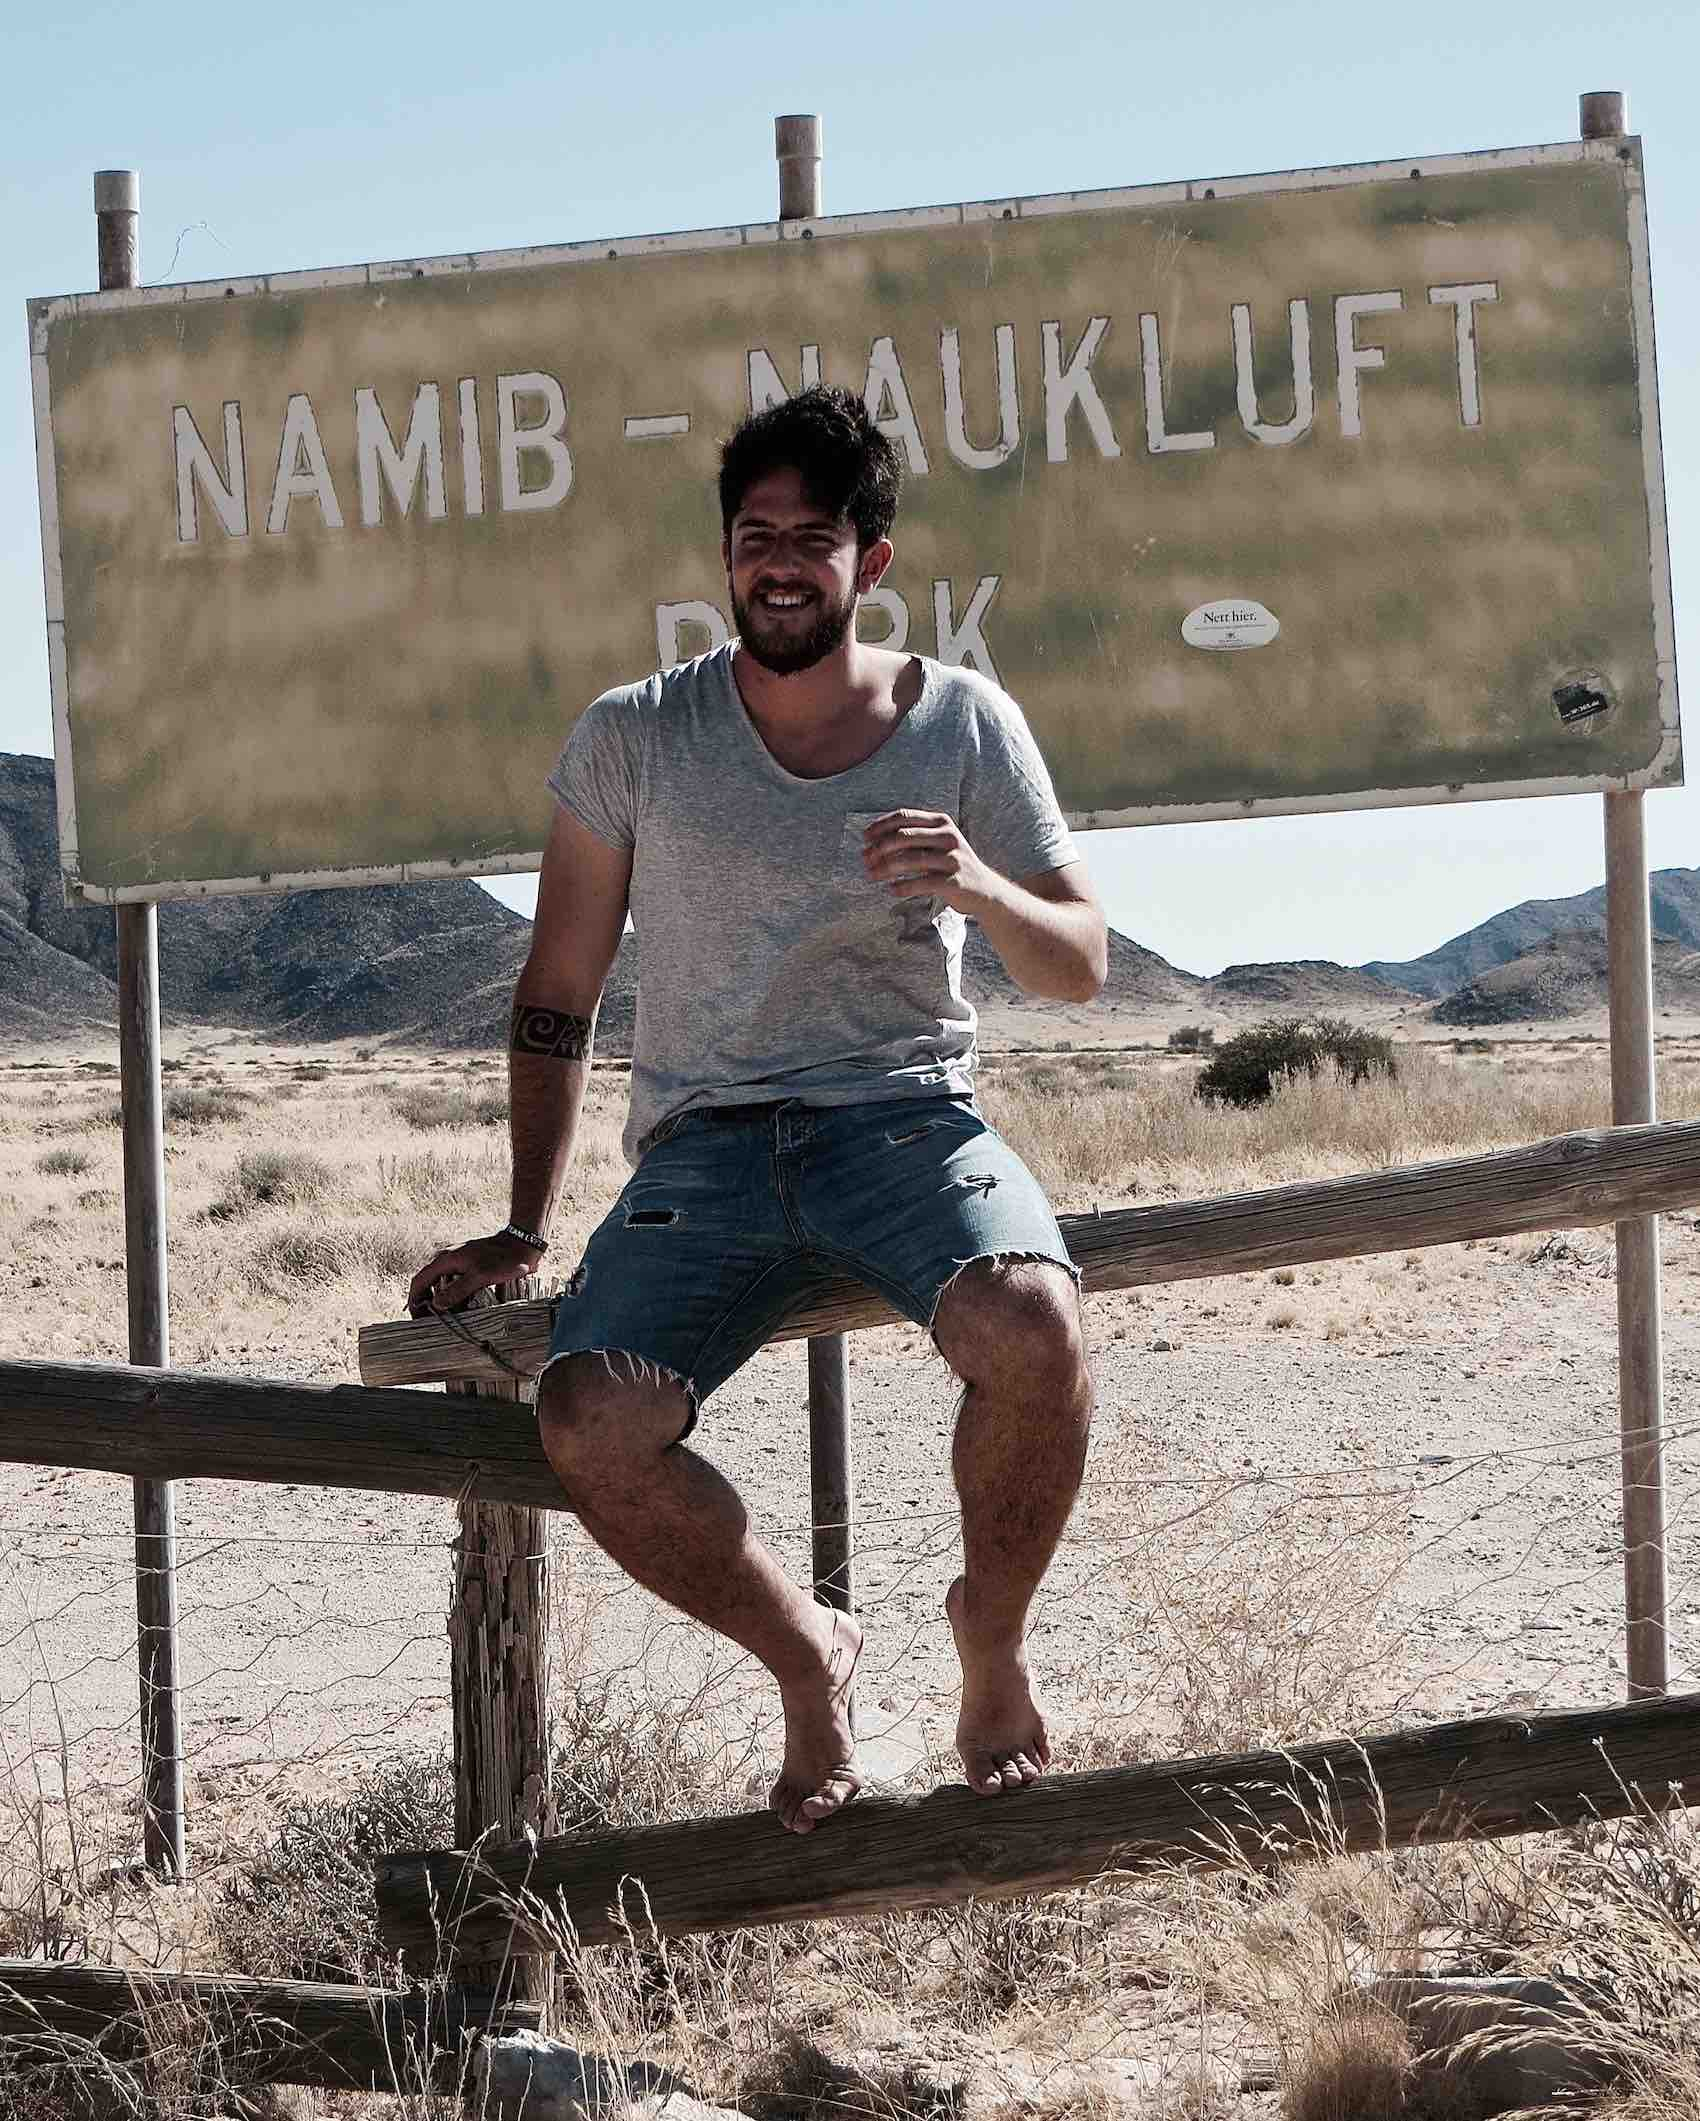 ITF in the Namib Desert in Namibia